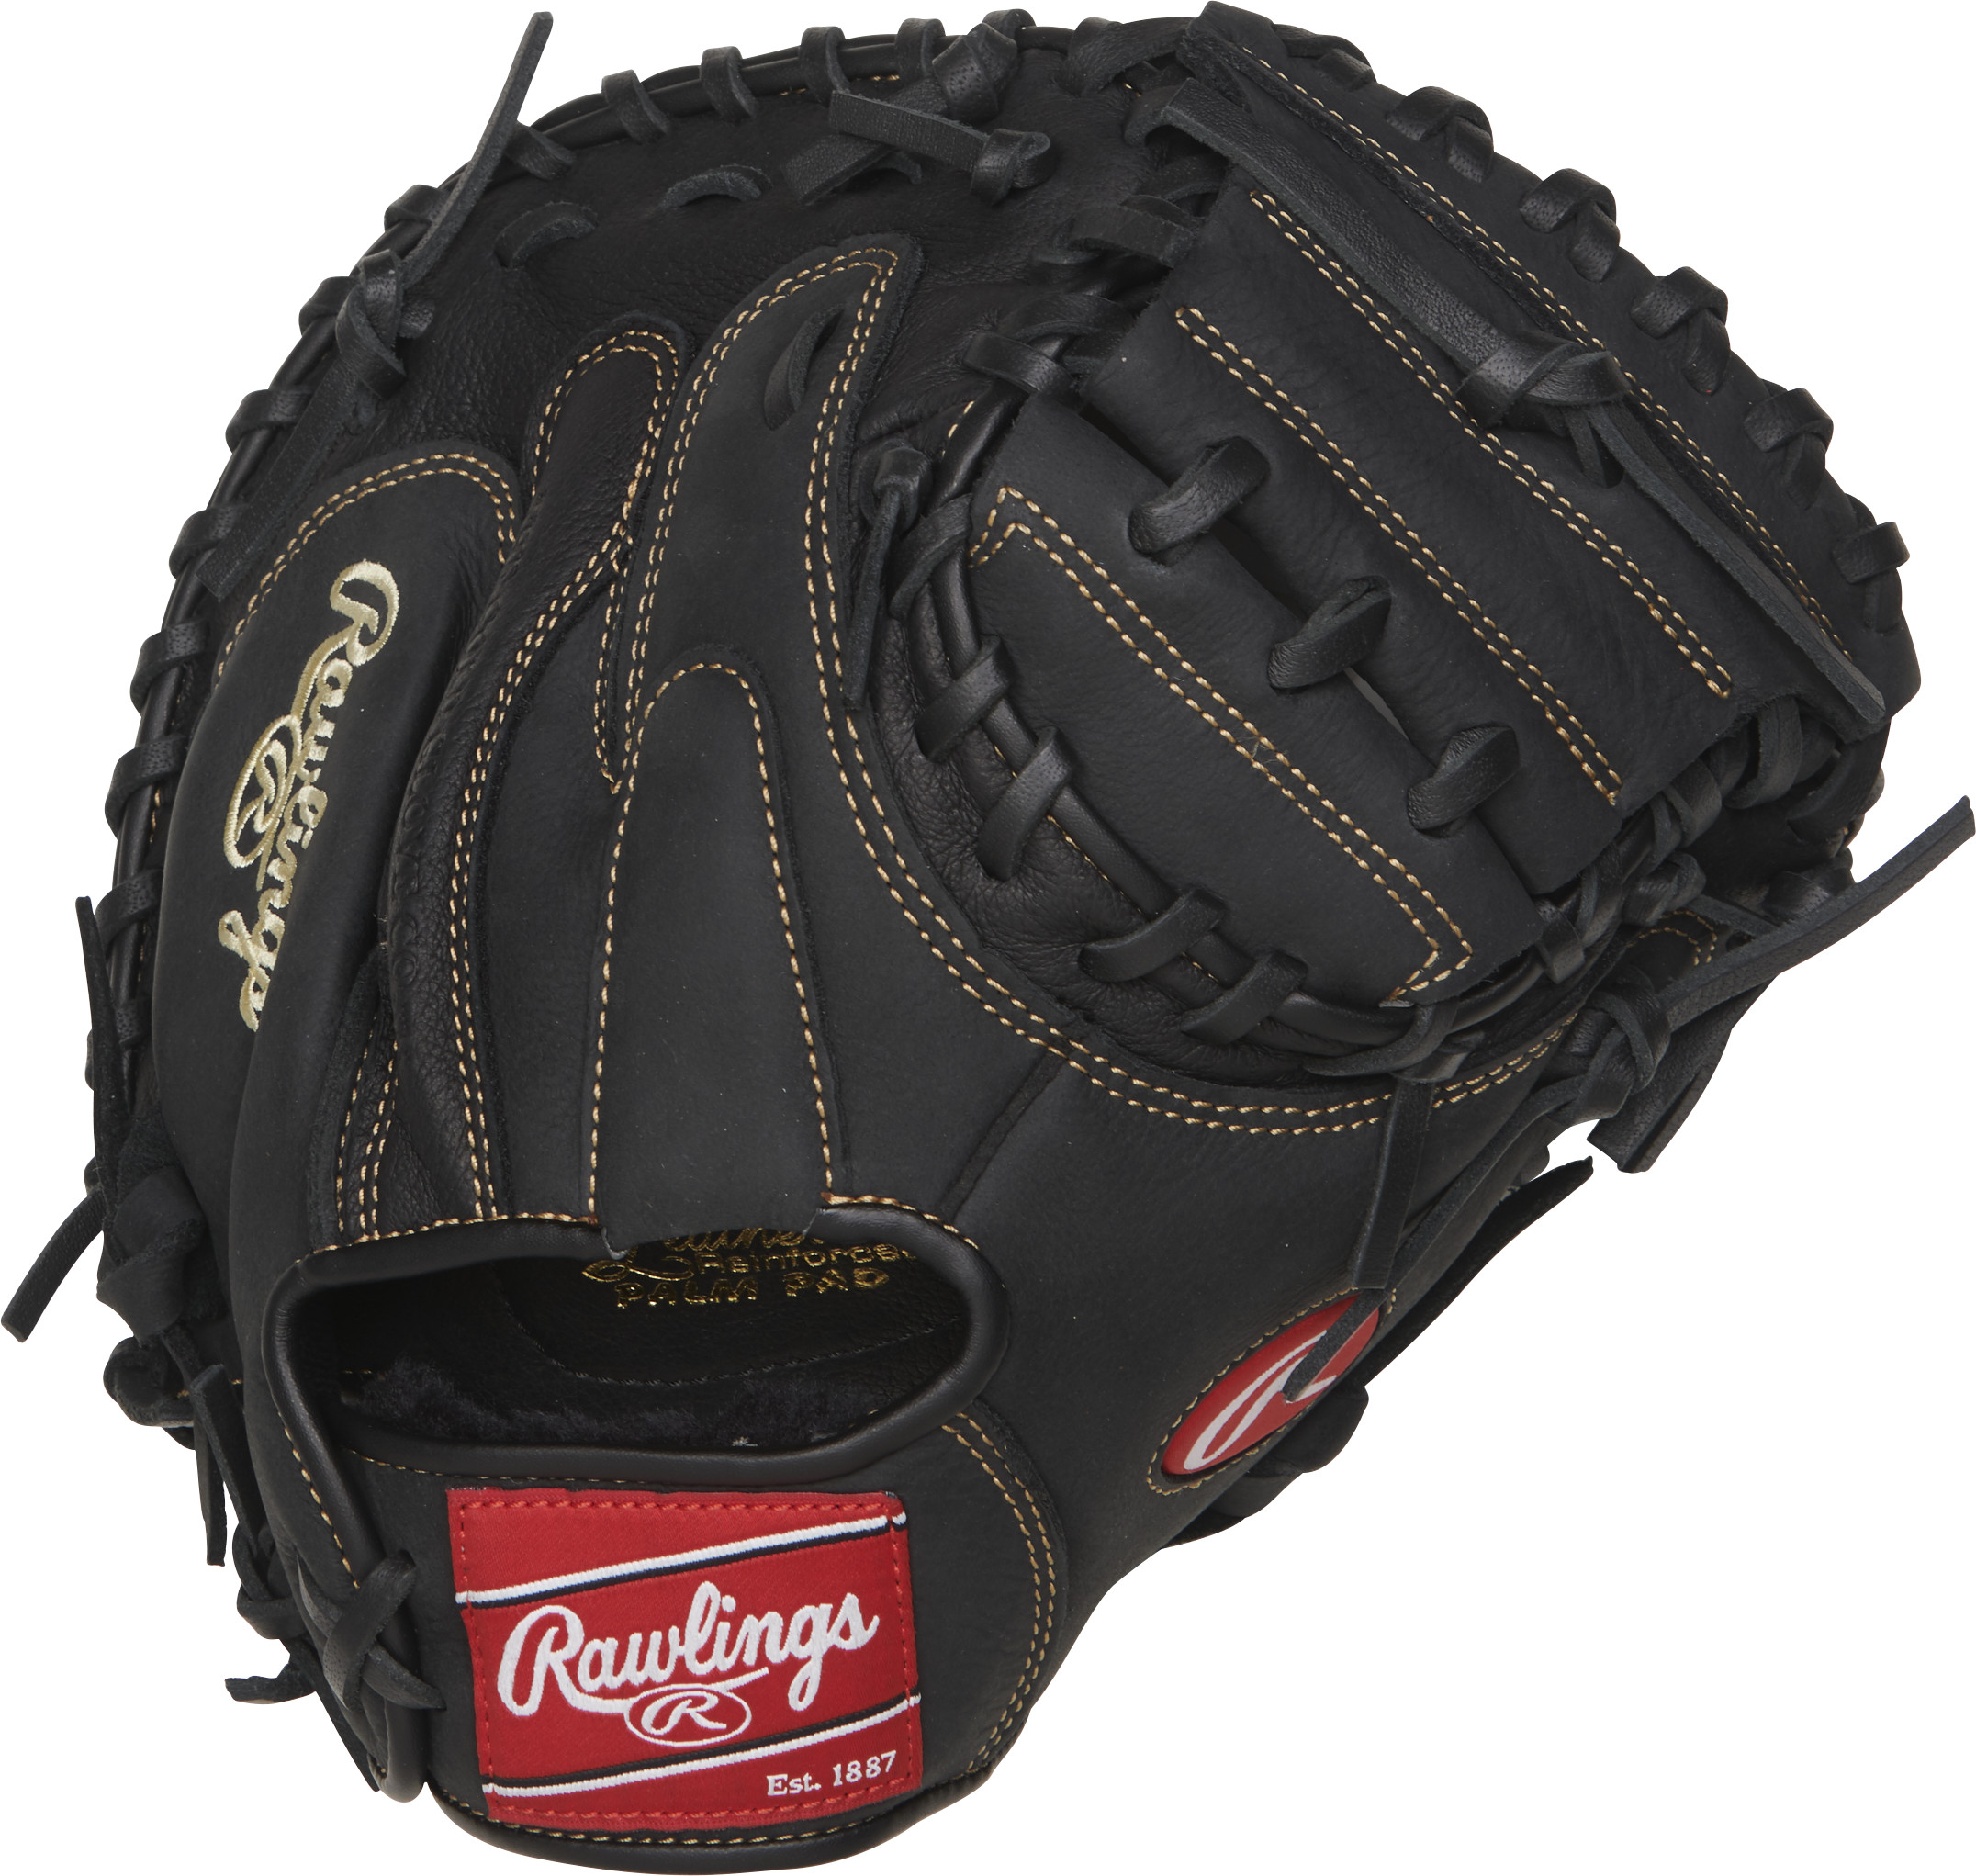 http://www.bestbatdeals.com/images/gloves/rawlings/RCM325B-2.jpg